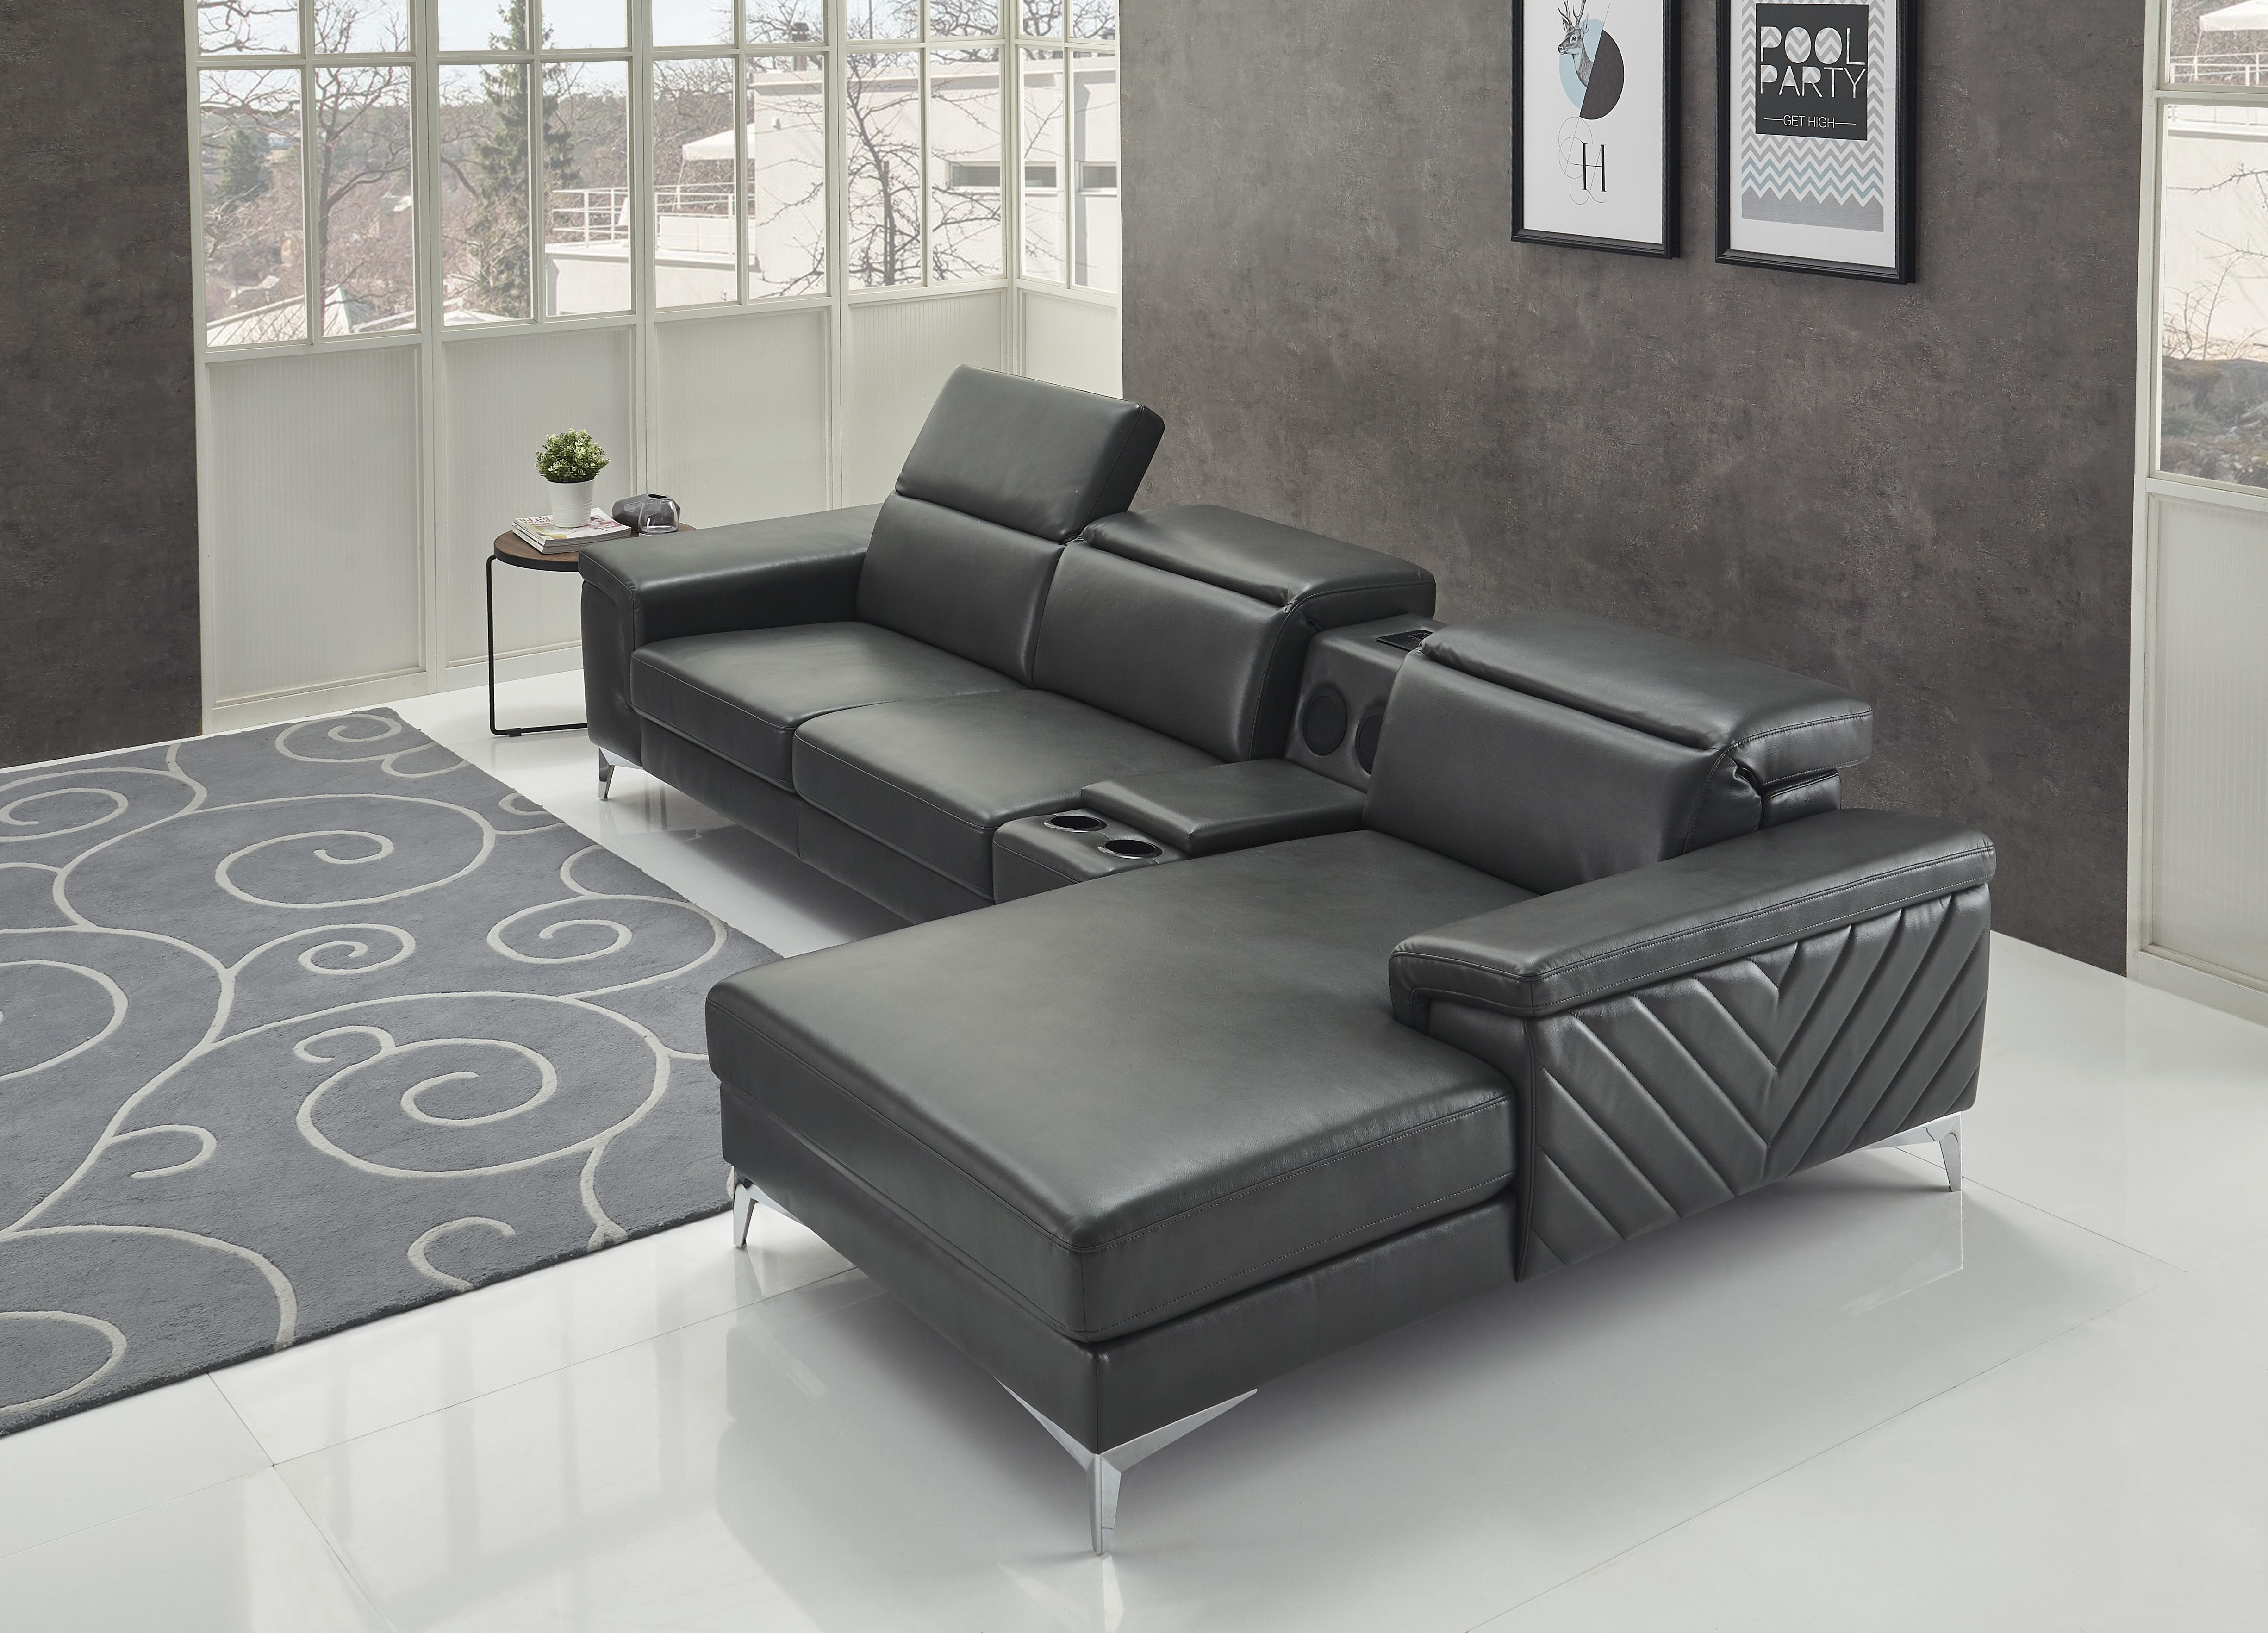 The Sara Sectional Sofa From Our Kelite Collection Is Such A Beautiful Multi Functional Piece Of Furniture Wit Furniture Sectional Living Room Collections